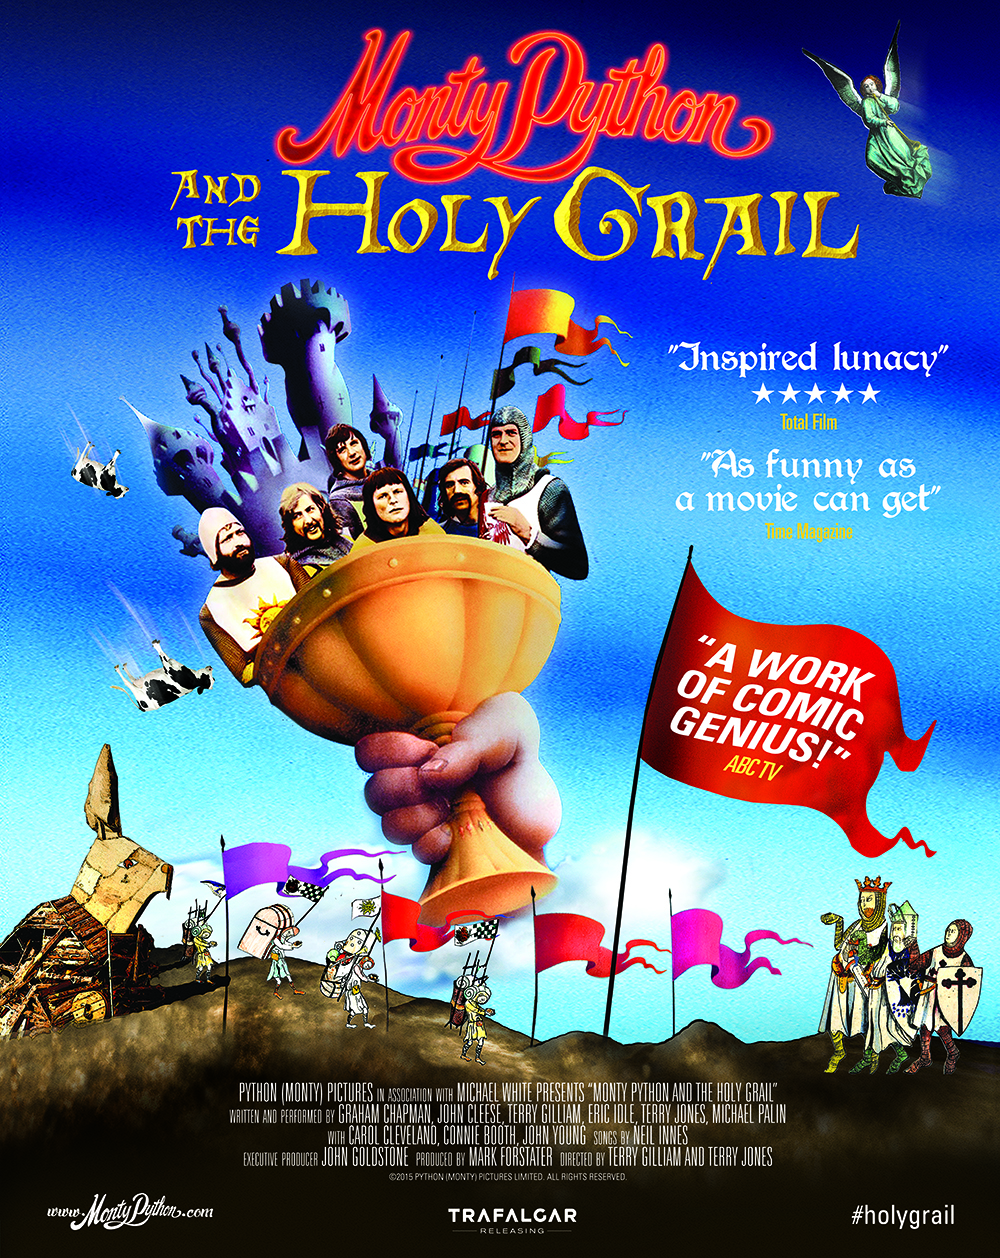 Monty Python And The Holy Grail (Flashback) Poster